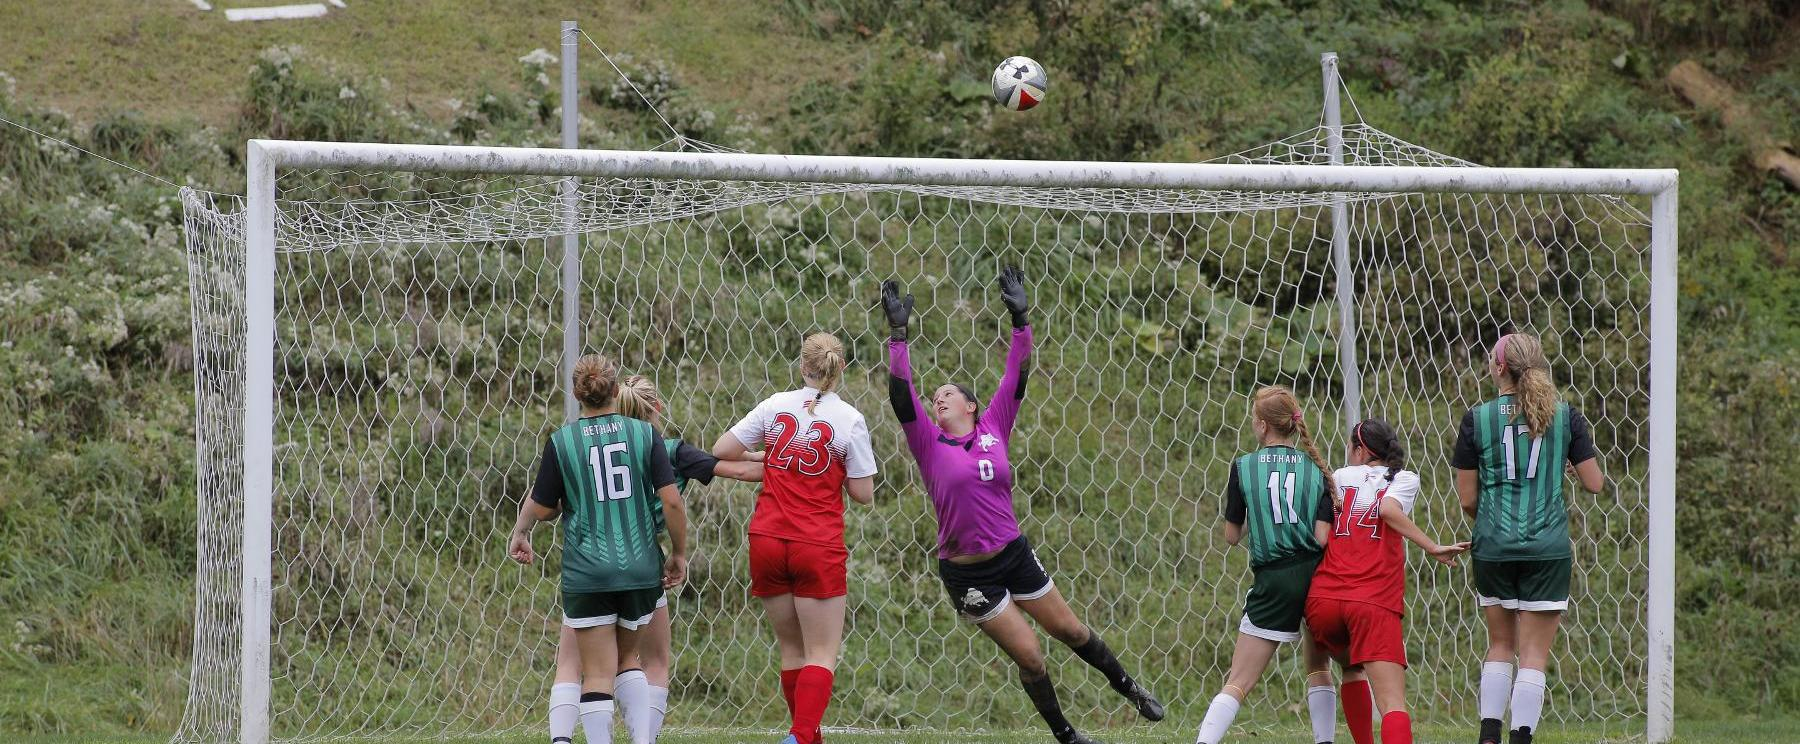 Women's Soccer drops game to Grove City, 3-0